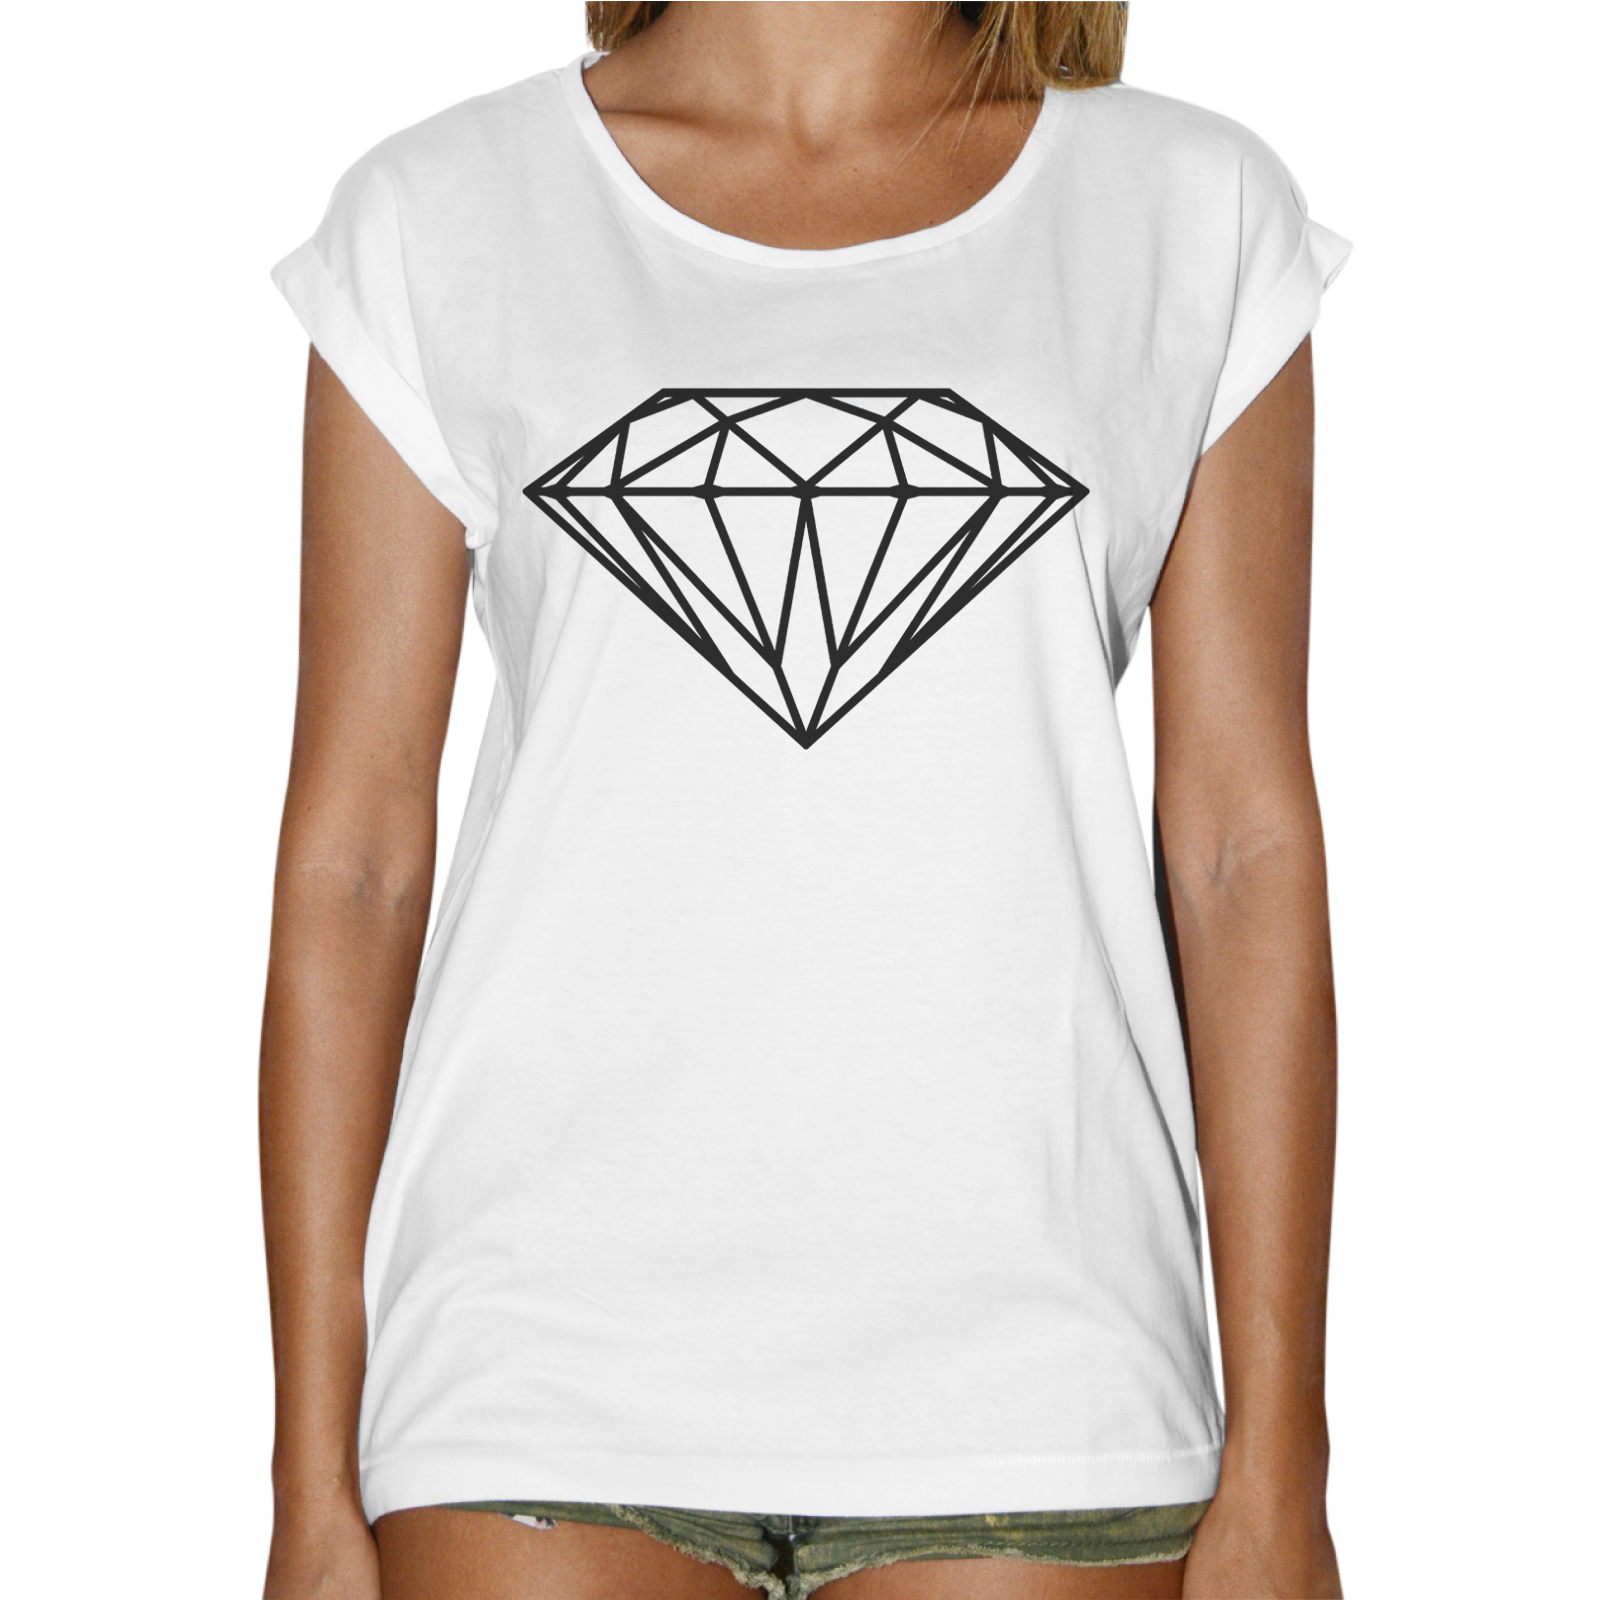 T-Shirt Donna Fashion DIAMANTE BASIC